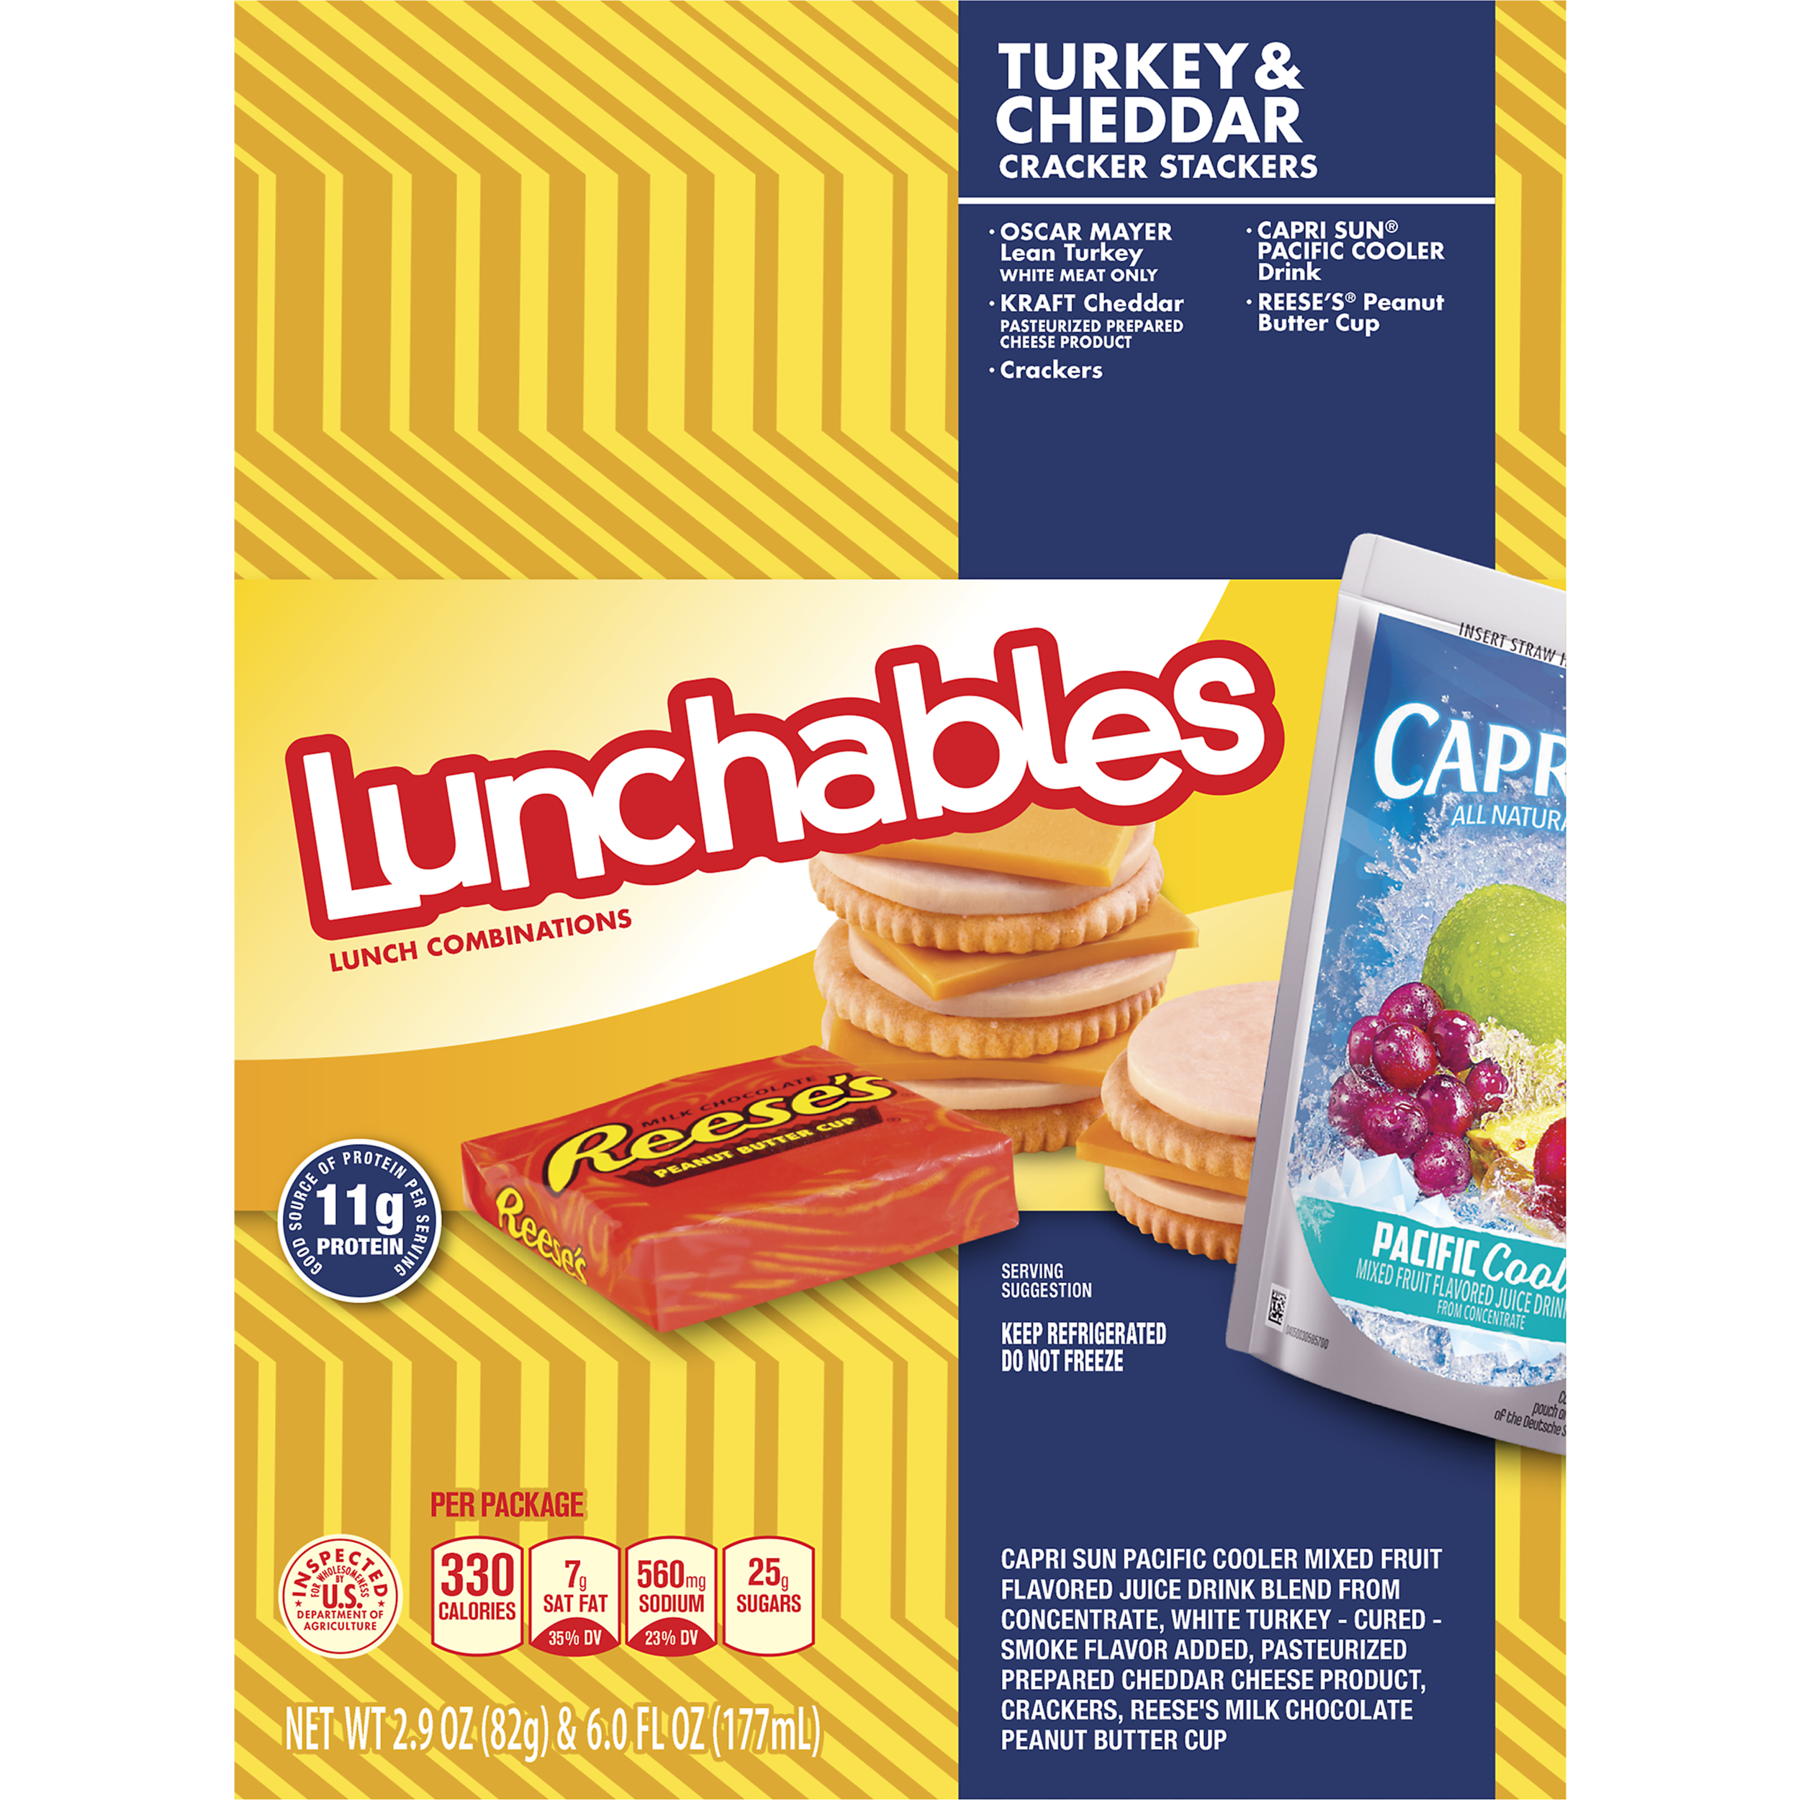 Lunchables Turkey & Cheddar Cheese Slices Cracker Stackers, Capri Sun & Reese's Lunch Combinations, 8.9 OZ